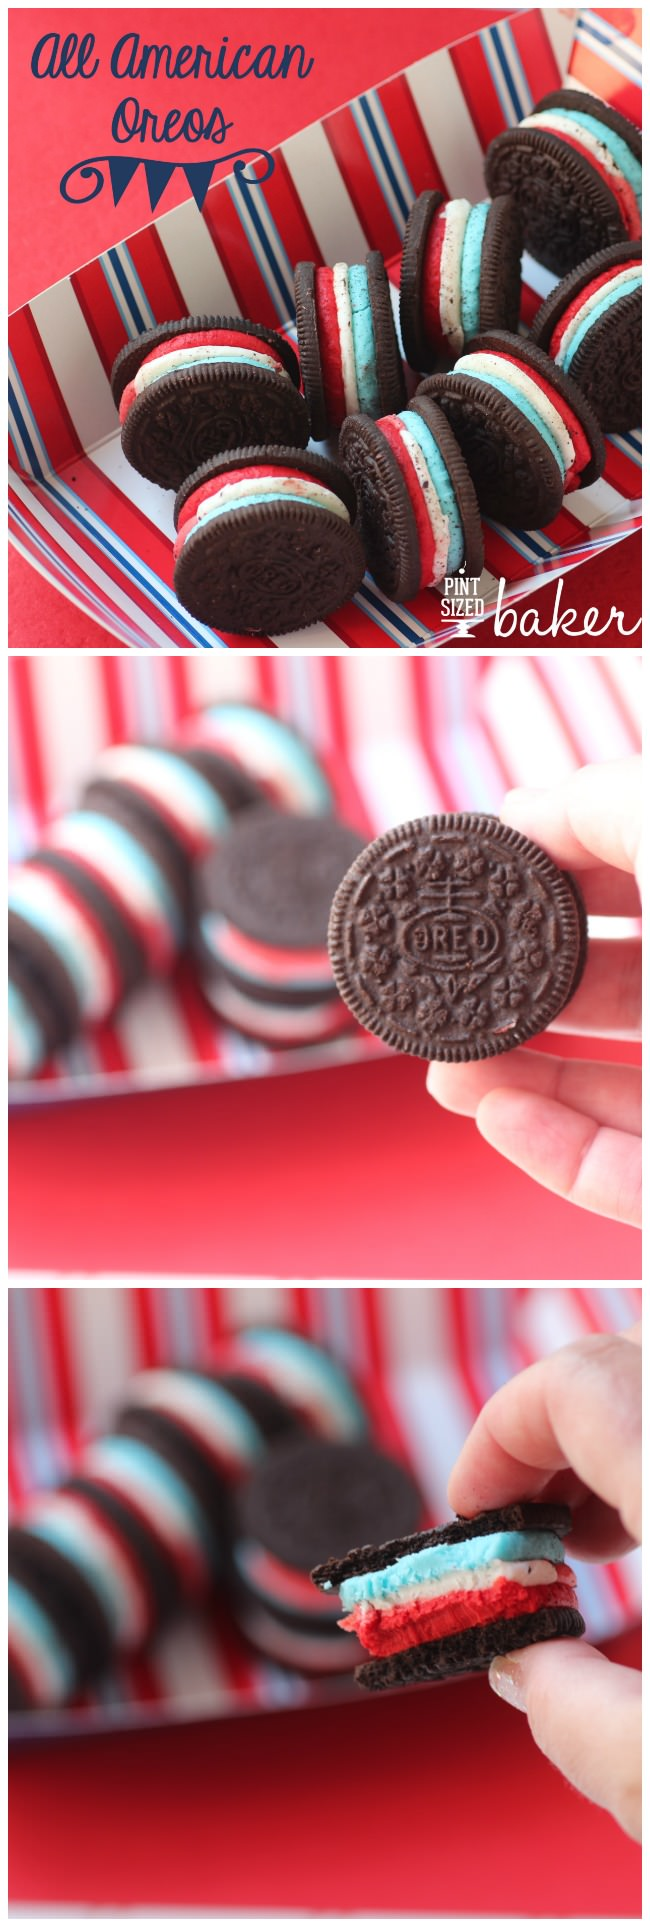 Grab the kids and three boxes or Oreo cookies to make these fun All American Oreos. Triple stuffed is the best way to enjoy Oreo Cookies!